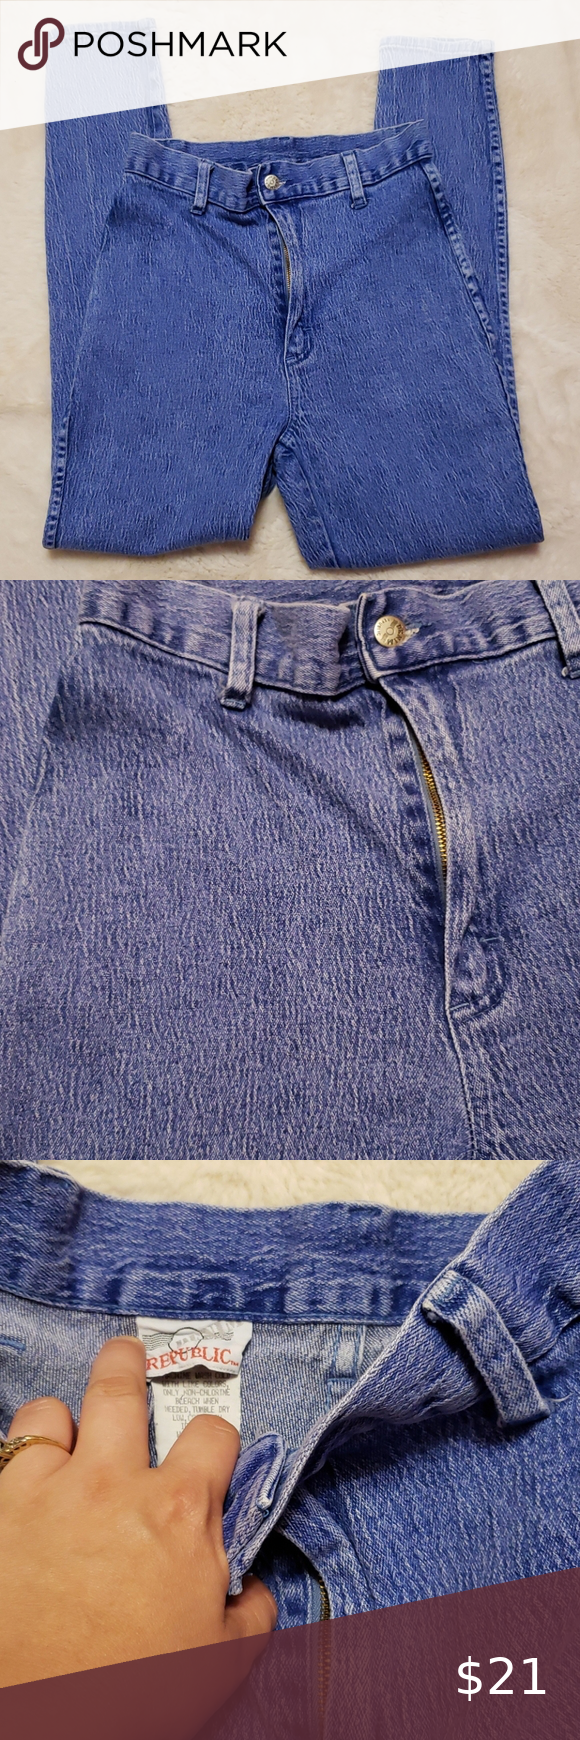 How To Get Dirt Stains Out Of Light Jeans